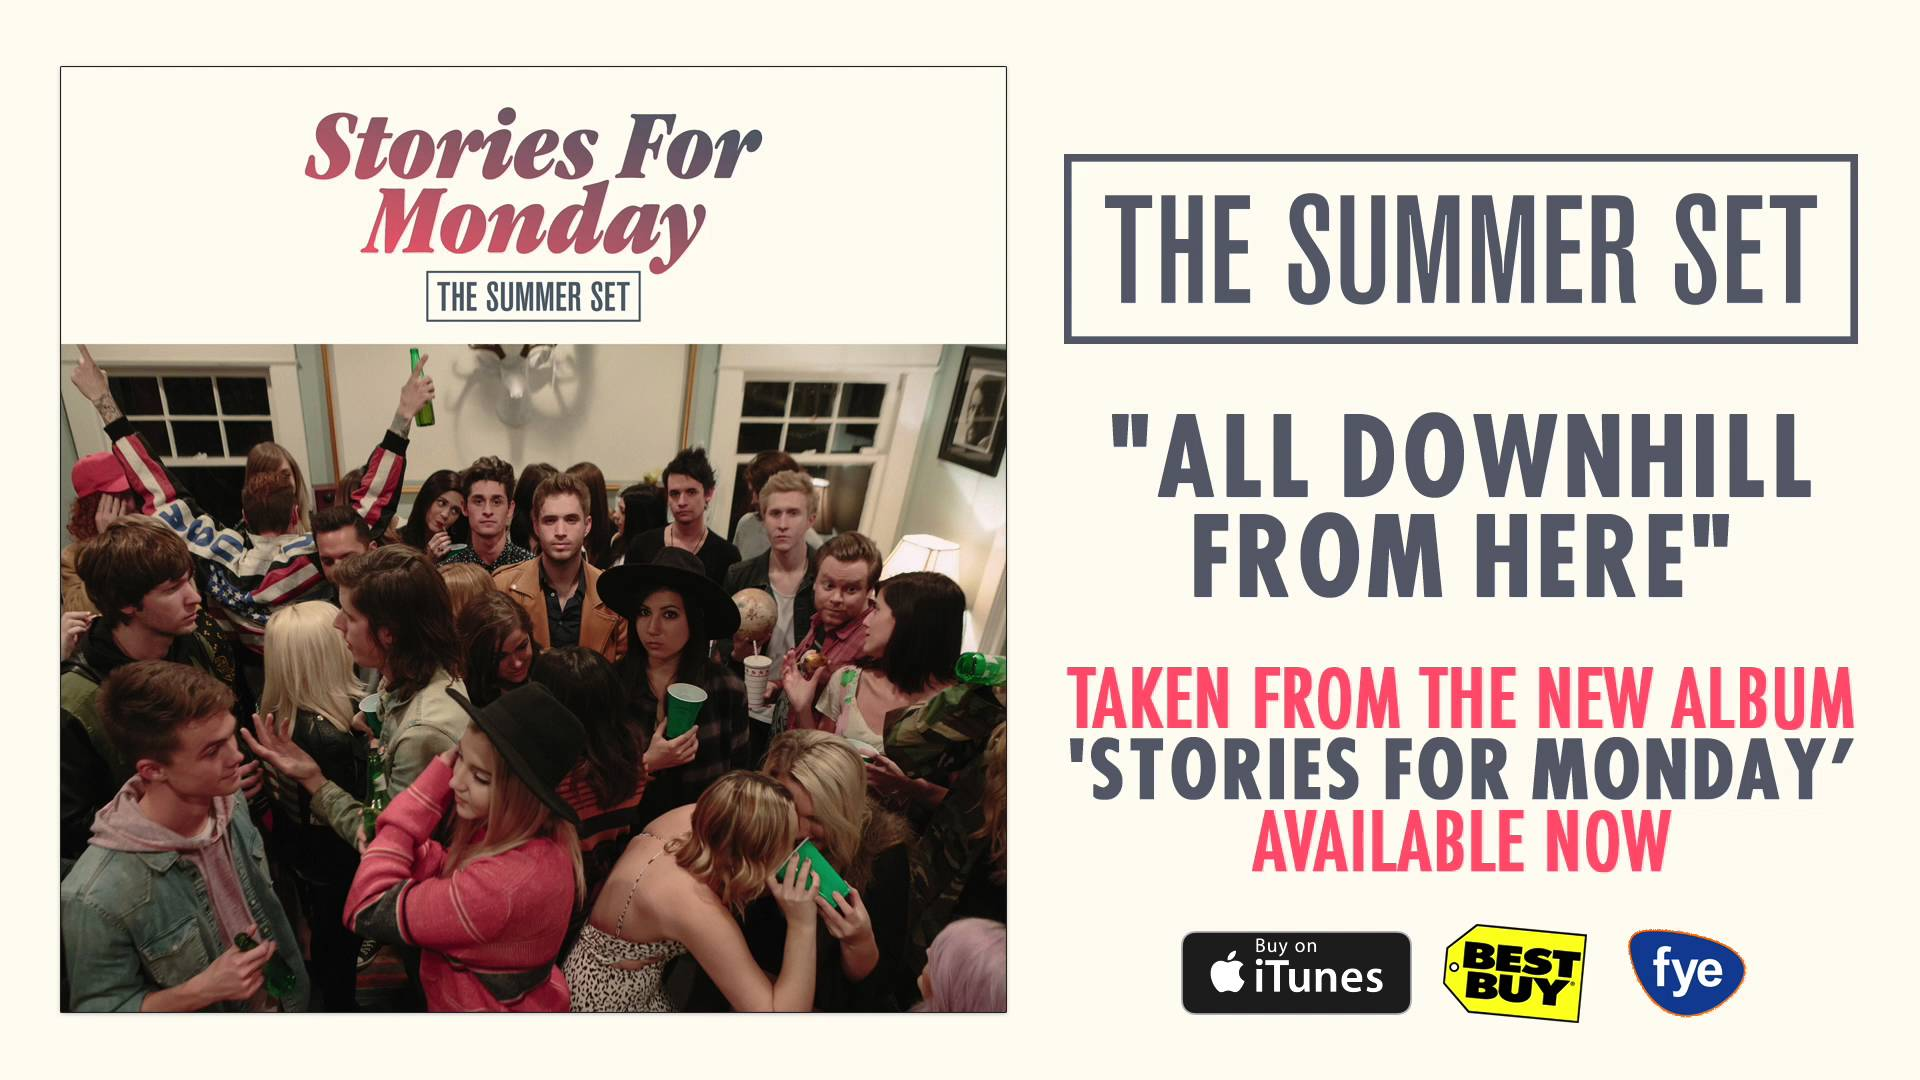 The Summer Set - All Downhill From Here